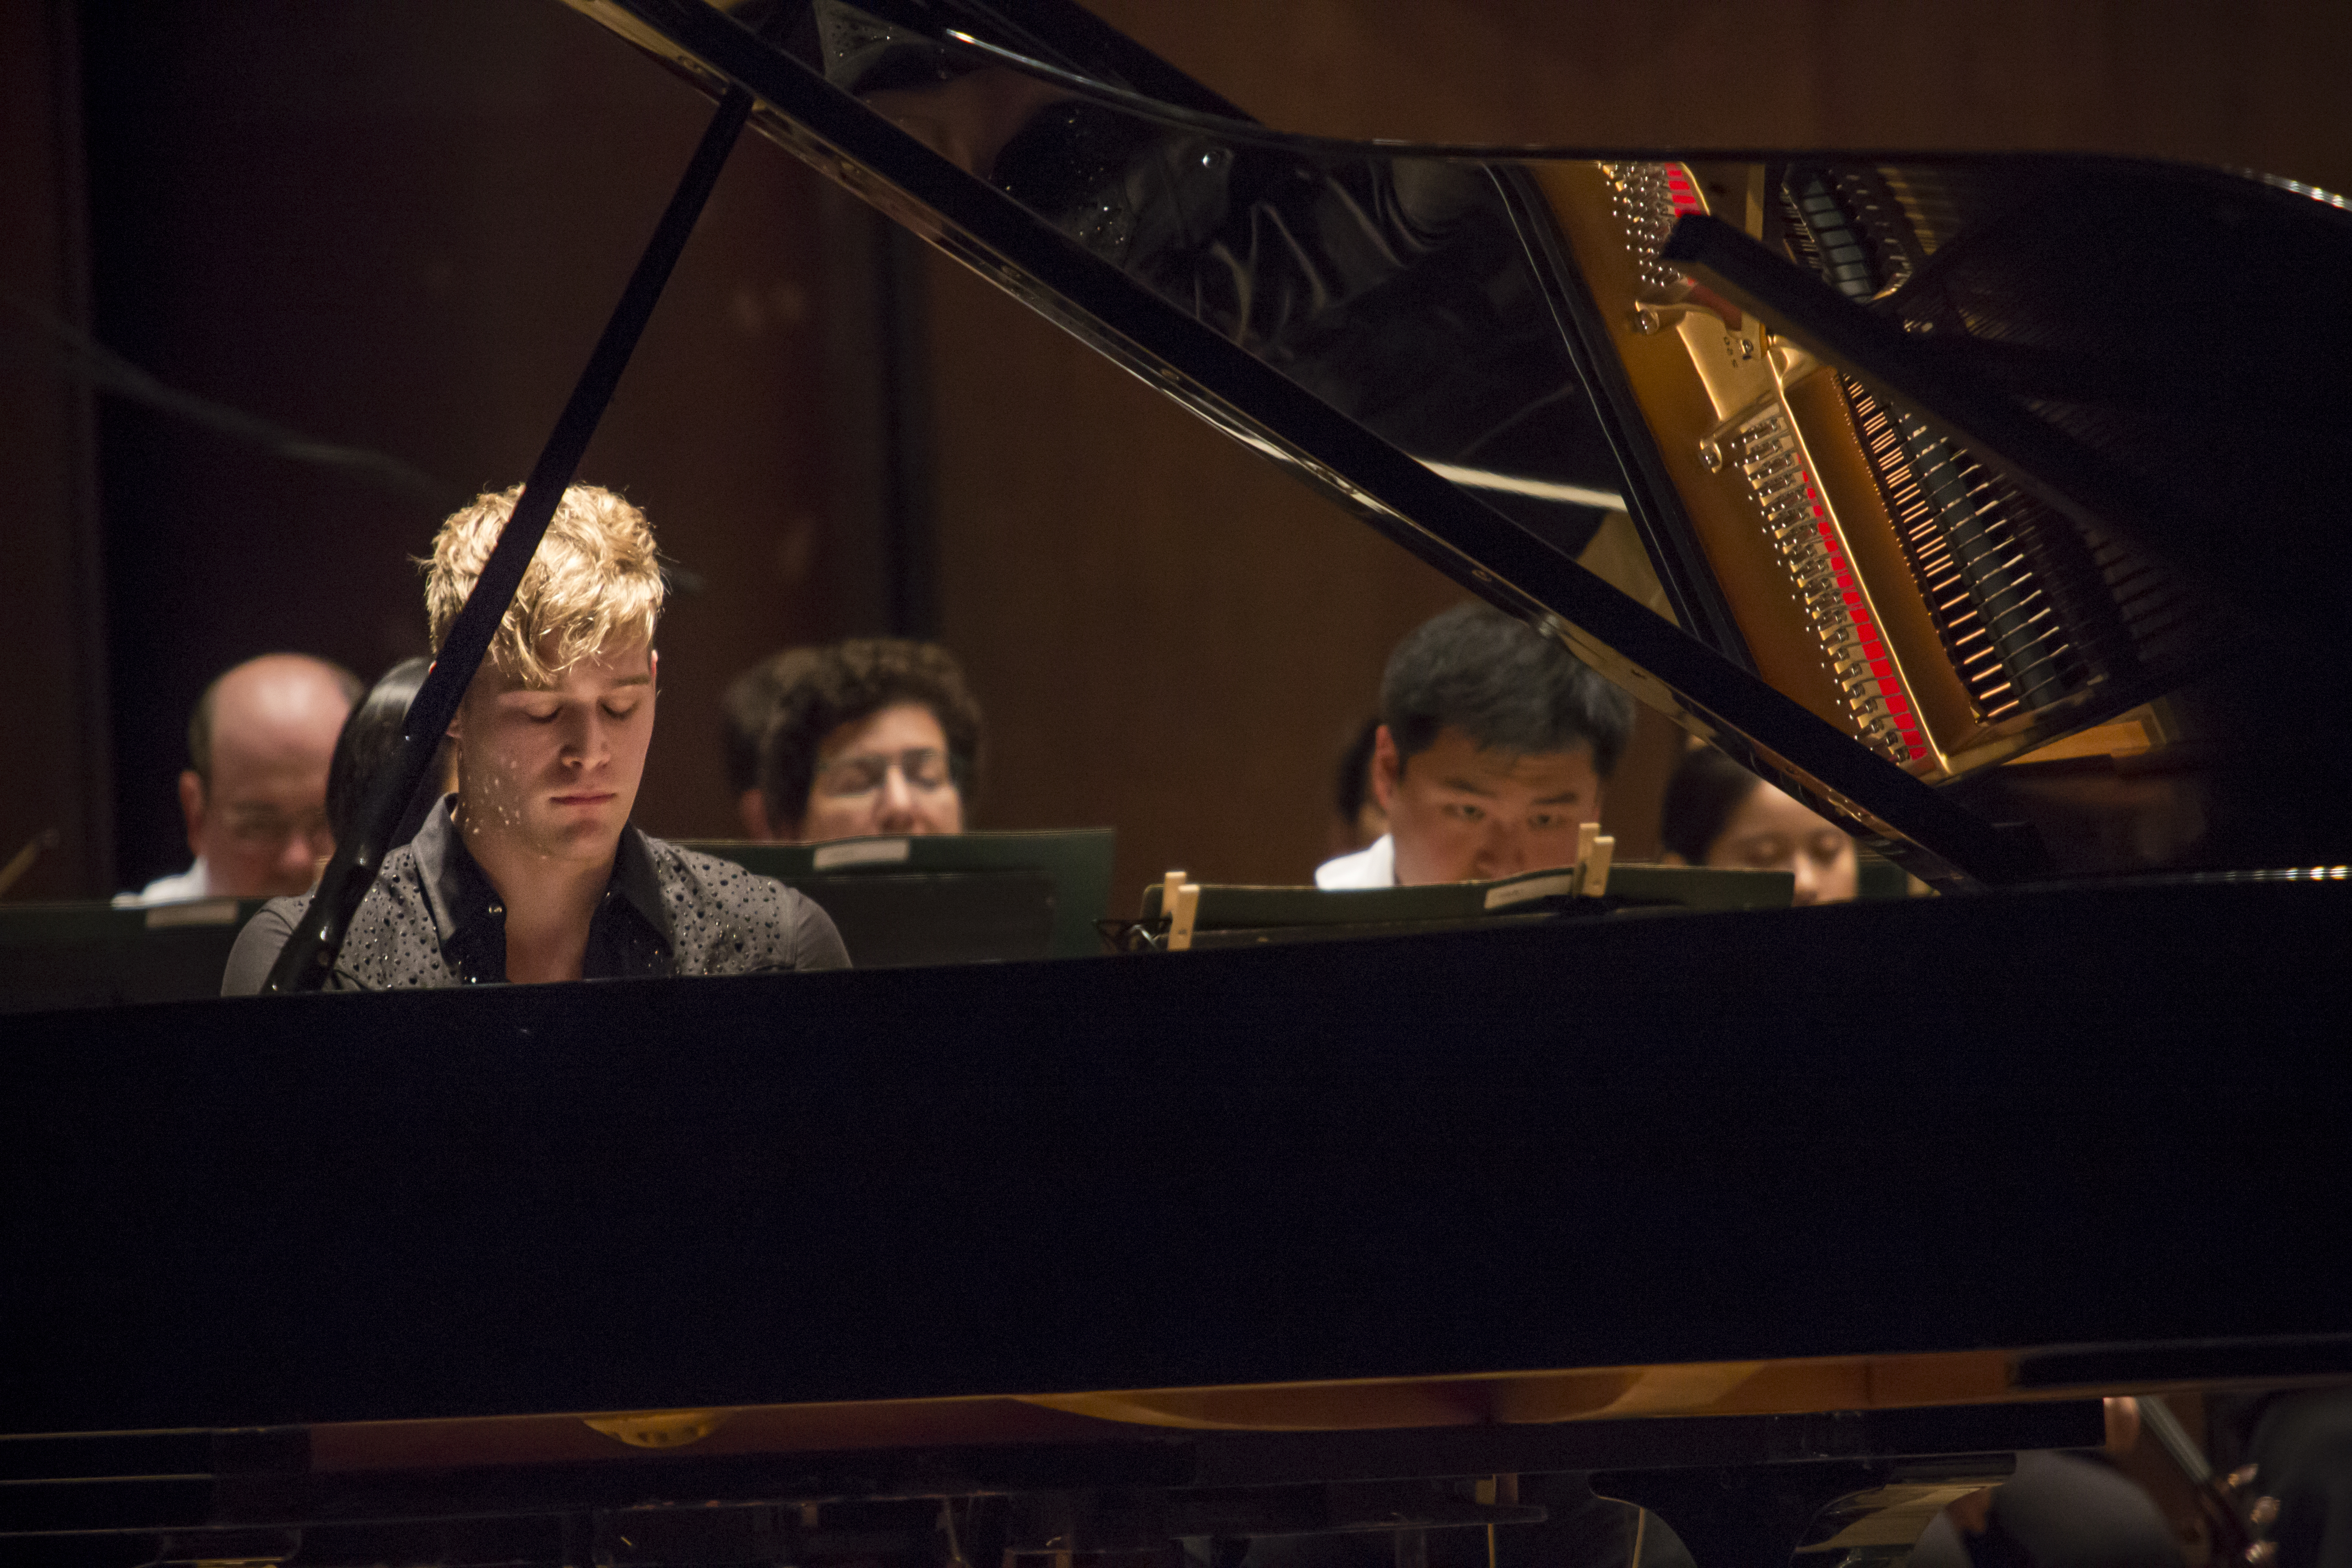 Pianist Micah McLaurin performing Friday night with the Philadelphia Orchestra at the Mann Center.